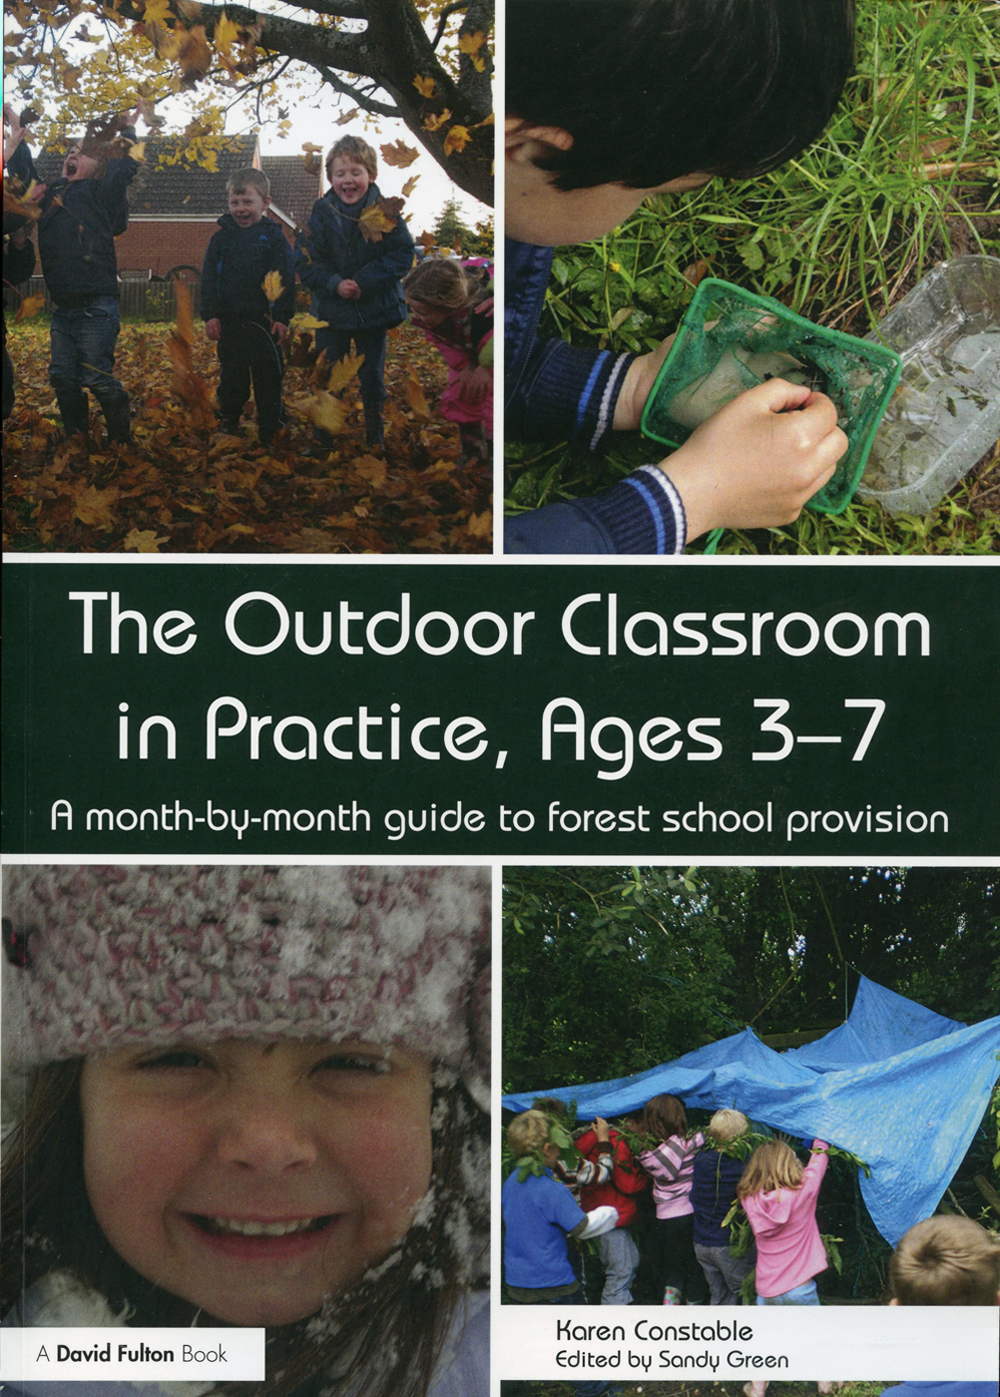 Outdoor Classroom in Practice (The), Ages 3-7: A Month-by-Month Guide to Forest School Provision